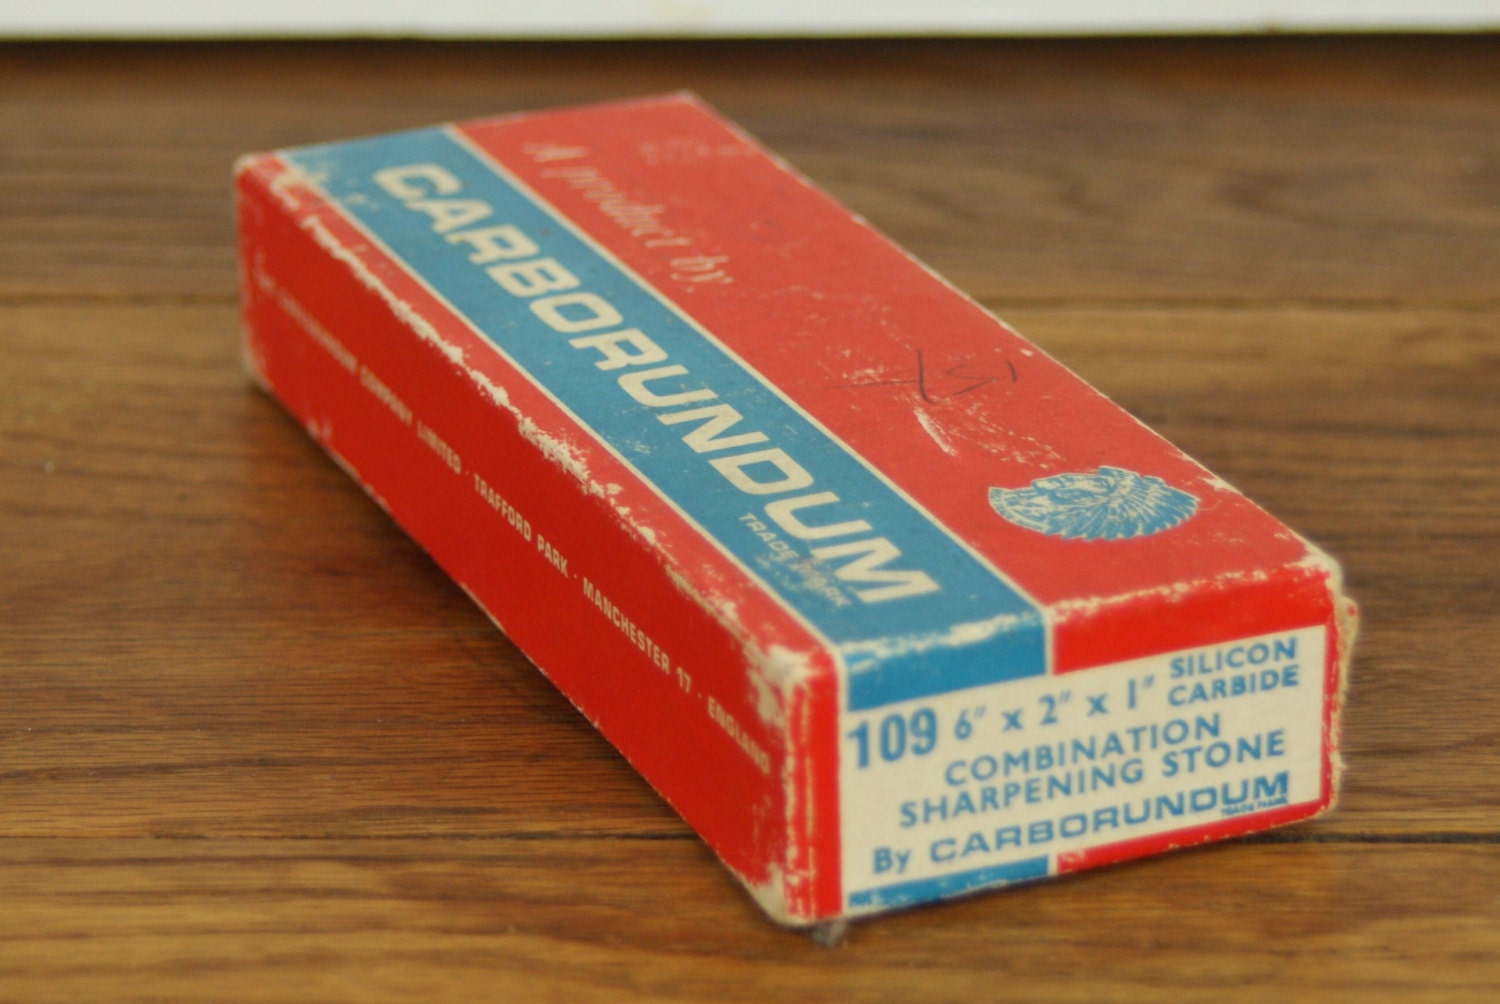 carborundum sharpening stone. + $14.34 shipping carborundum sharpening stone n